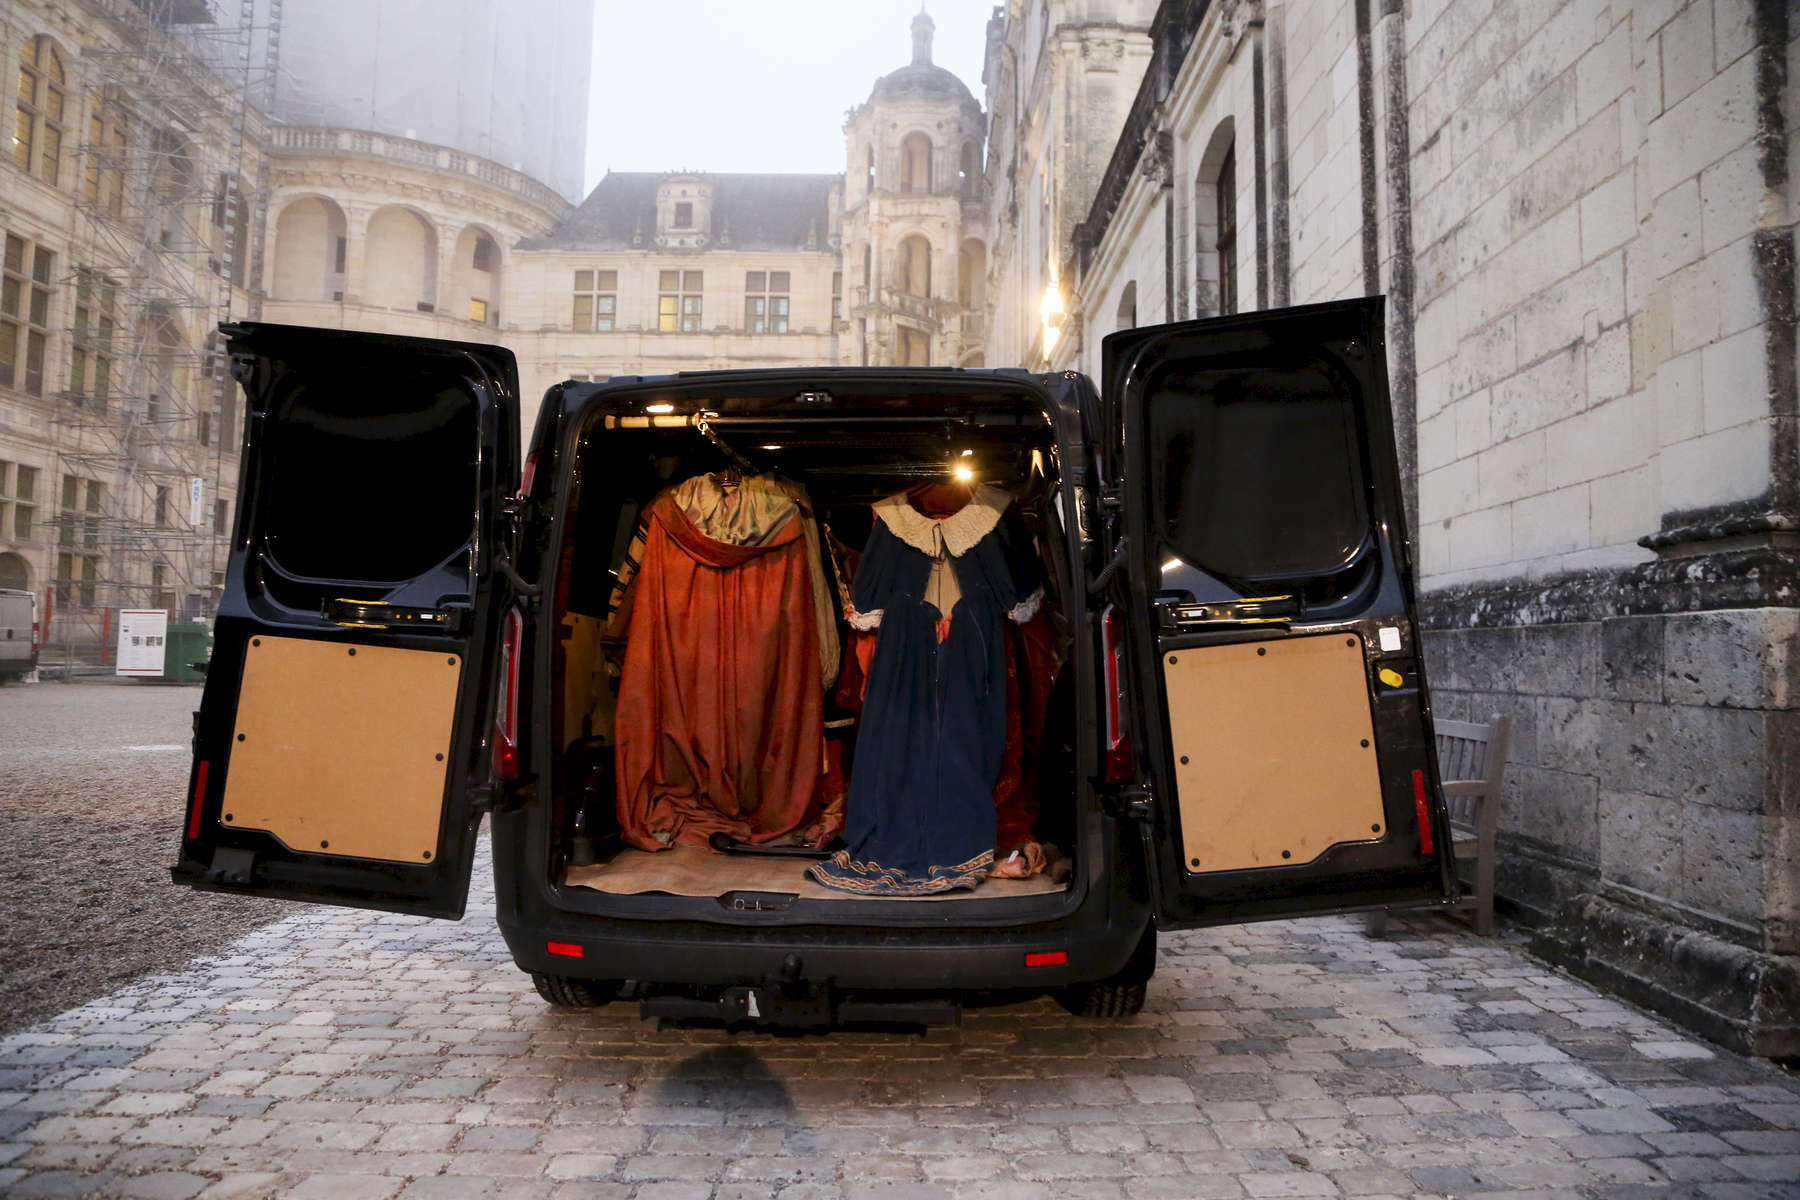 Costumes are seen in the truck before being sent to a cleaning company at the end of the show.